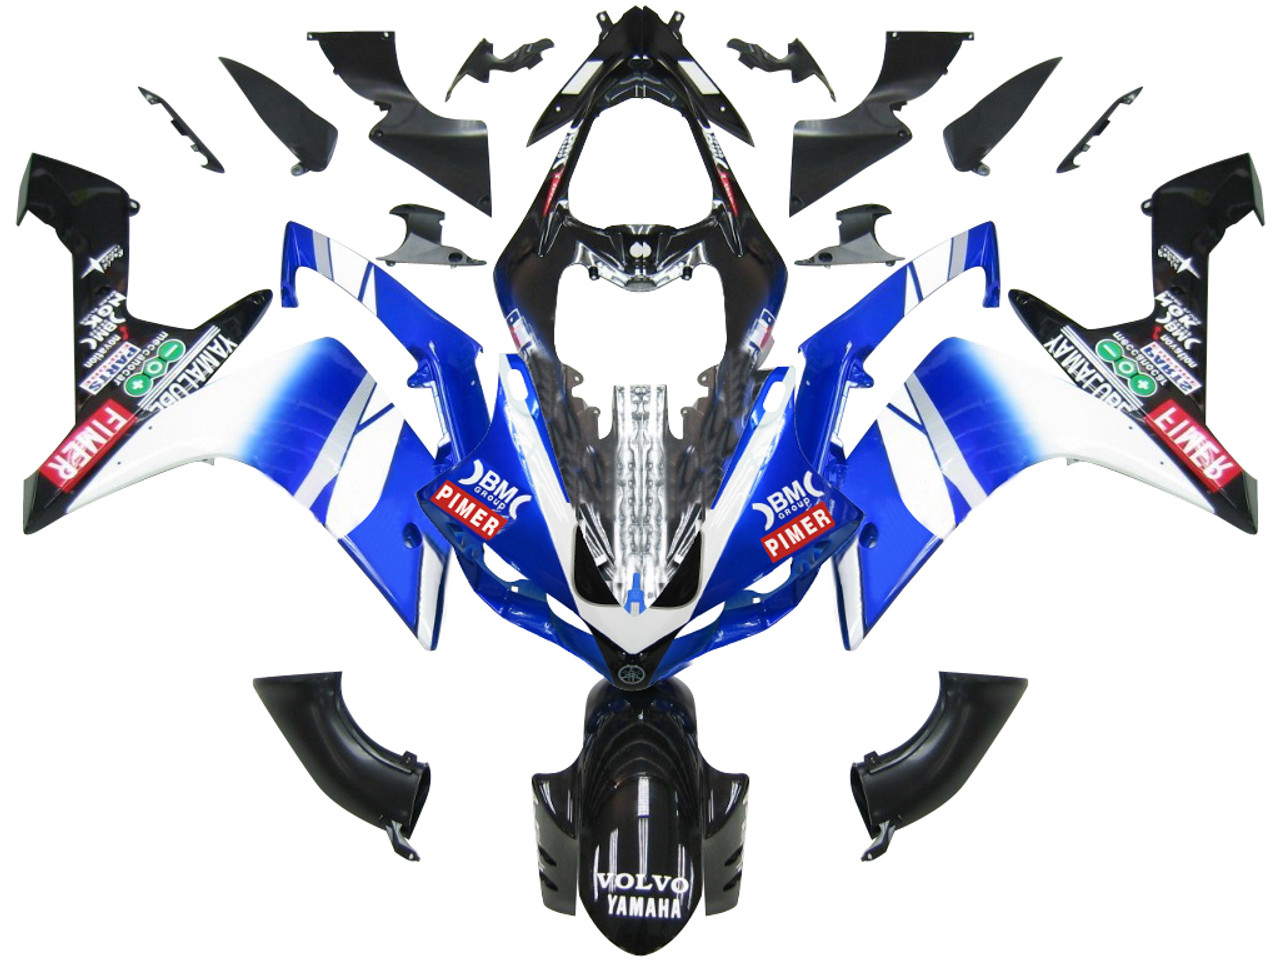 Fairings Yamaha YZF-R1 Blue Black BMC R1 Racing (2007-2008)